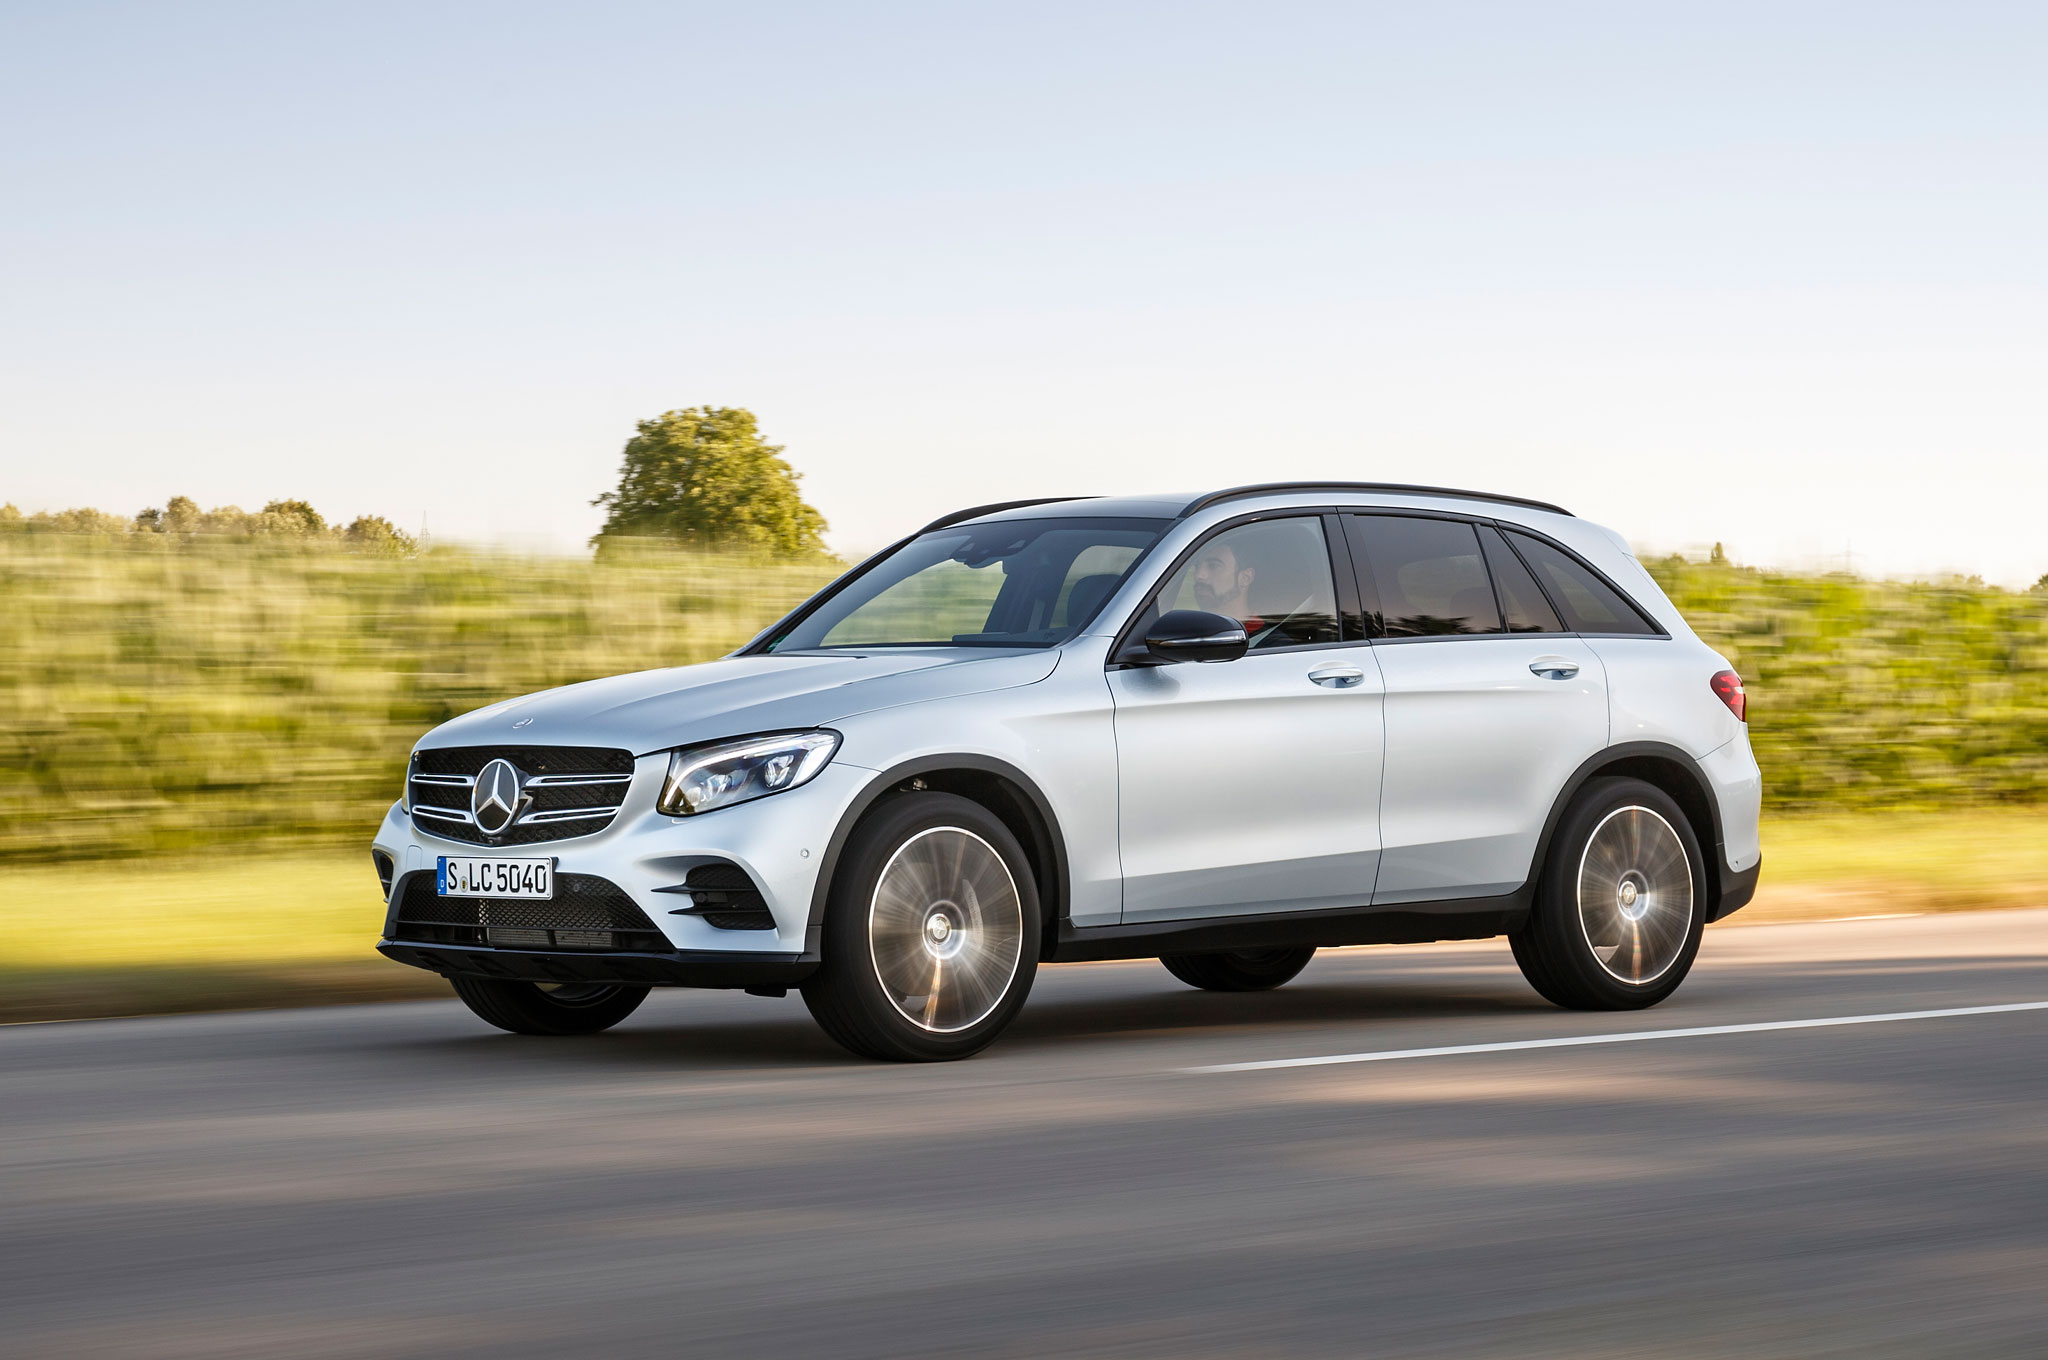 2016 Mercedes Benz Glc300 Starts At 39 875 4matic At 41 875